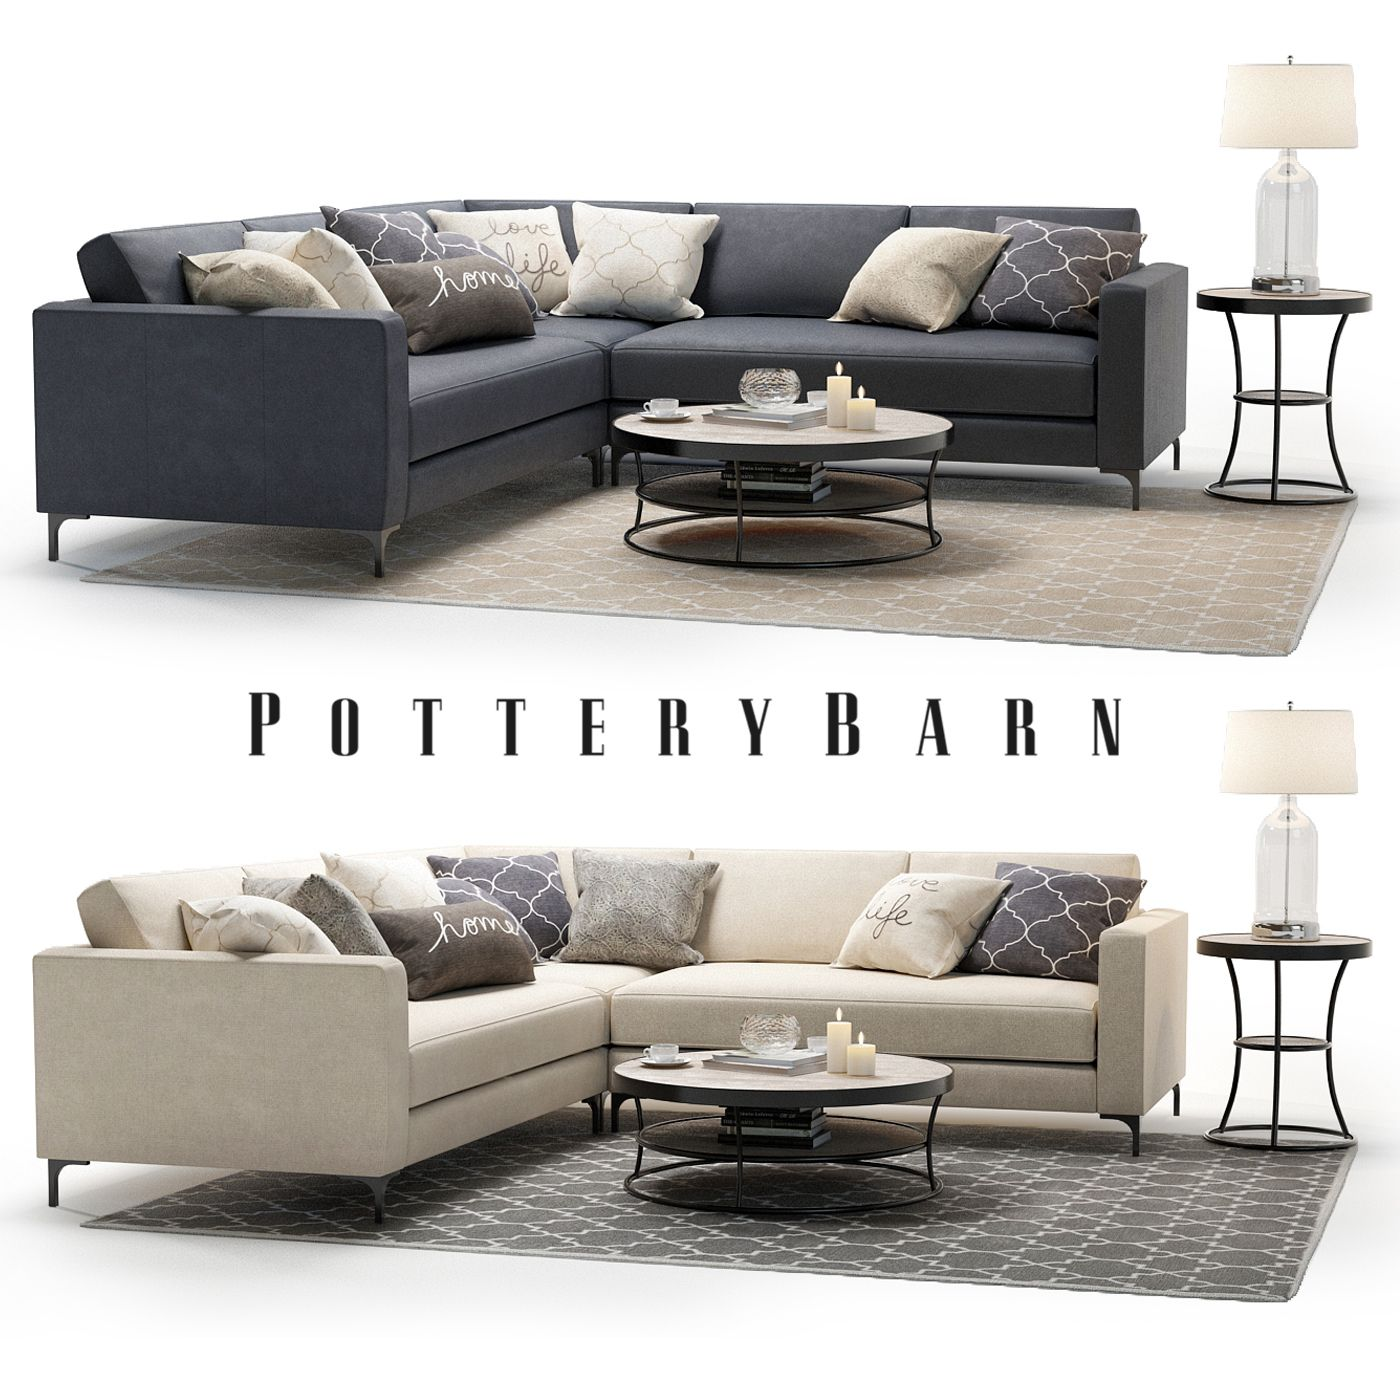 Pottery Barn / Jake Sofa set #1 with Tables & Decor in 2019 ...